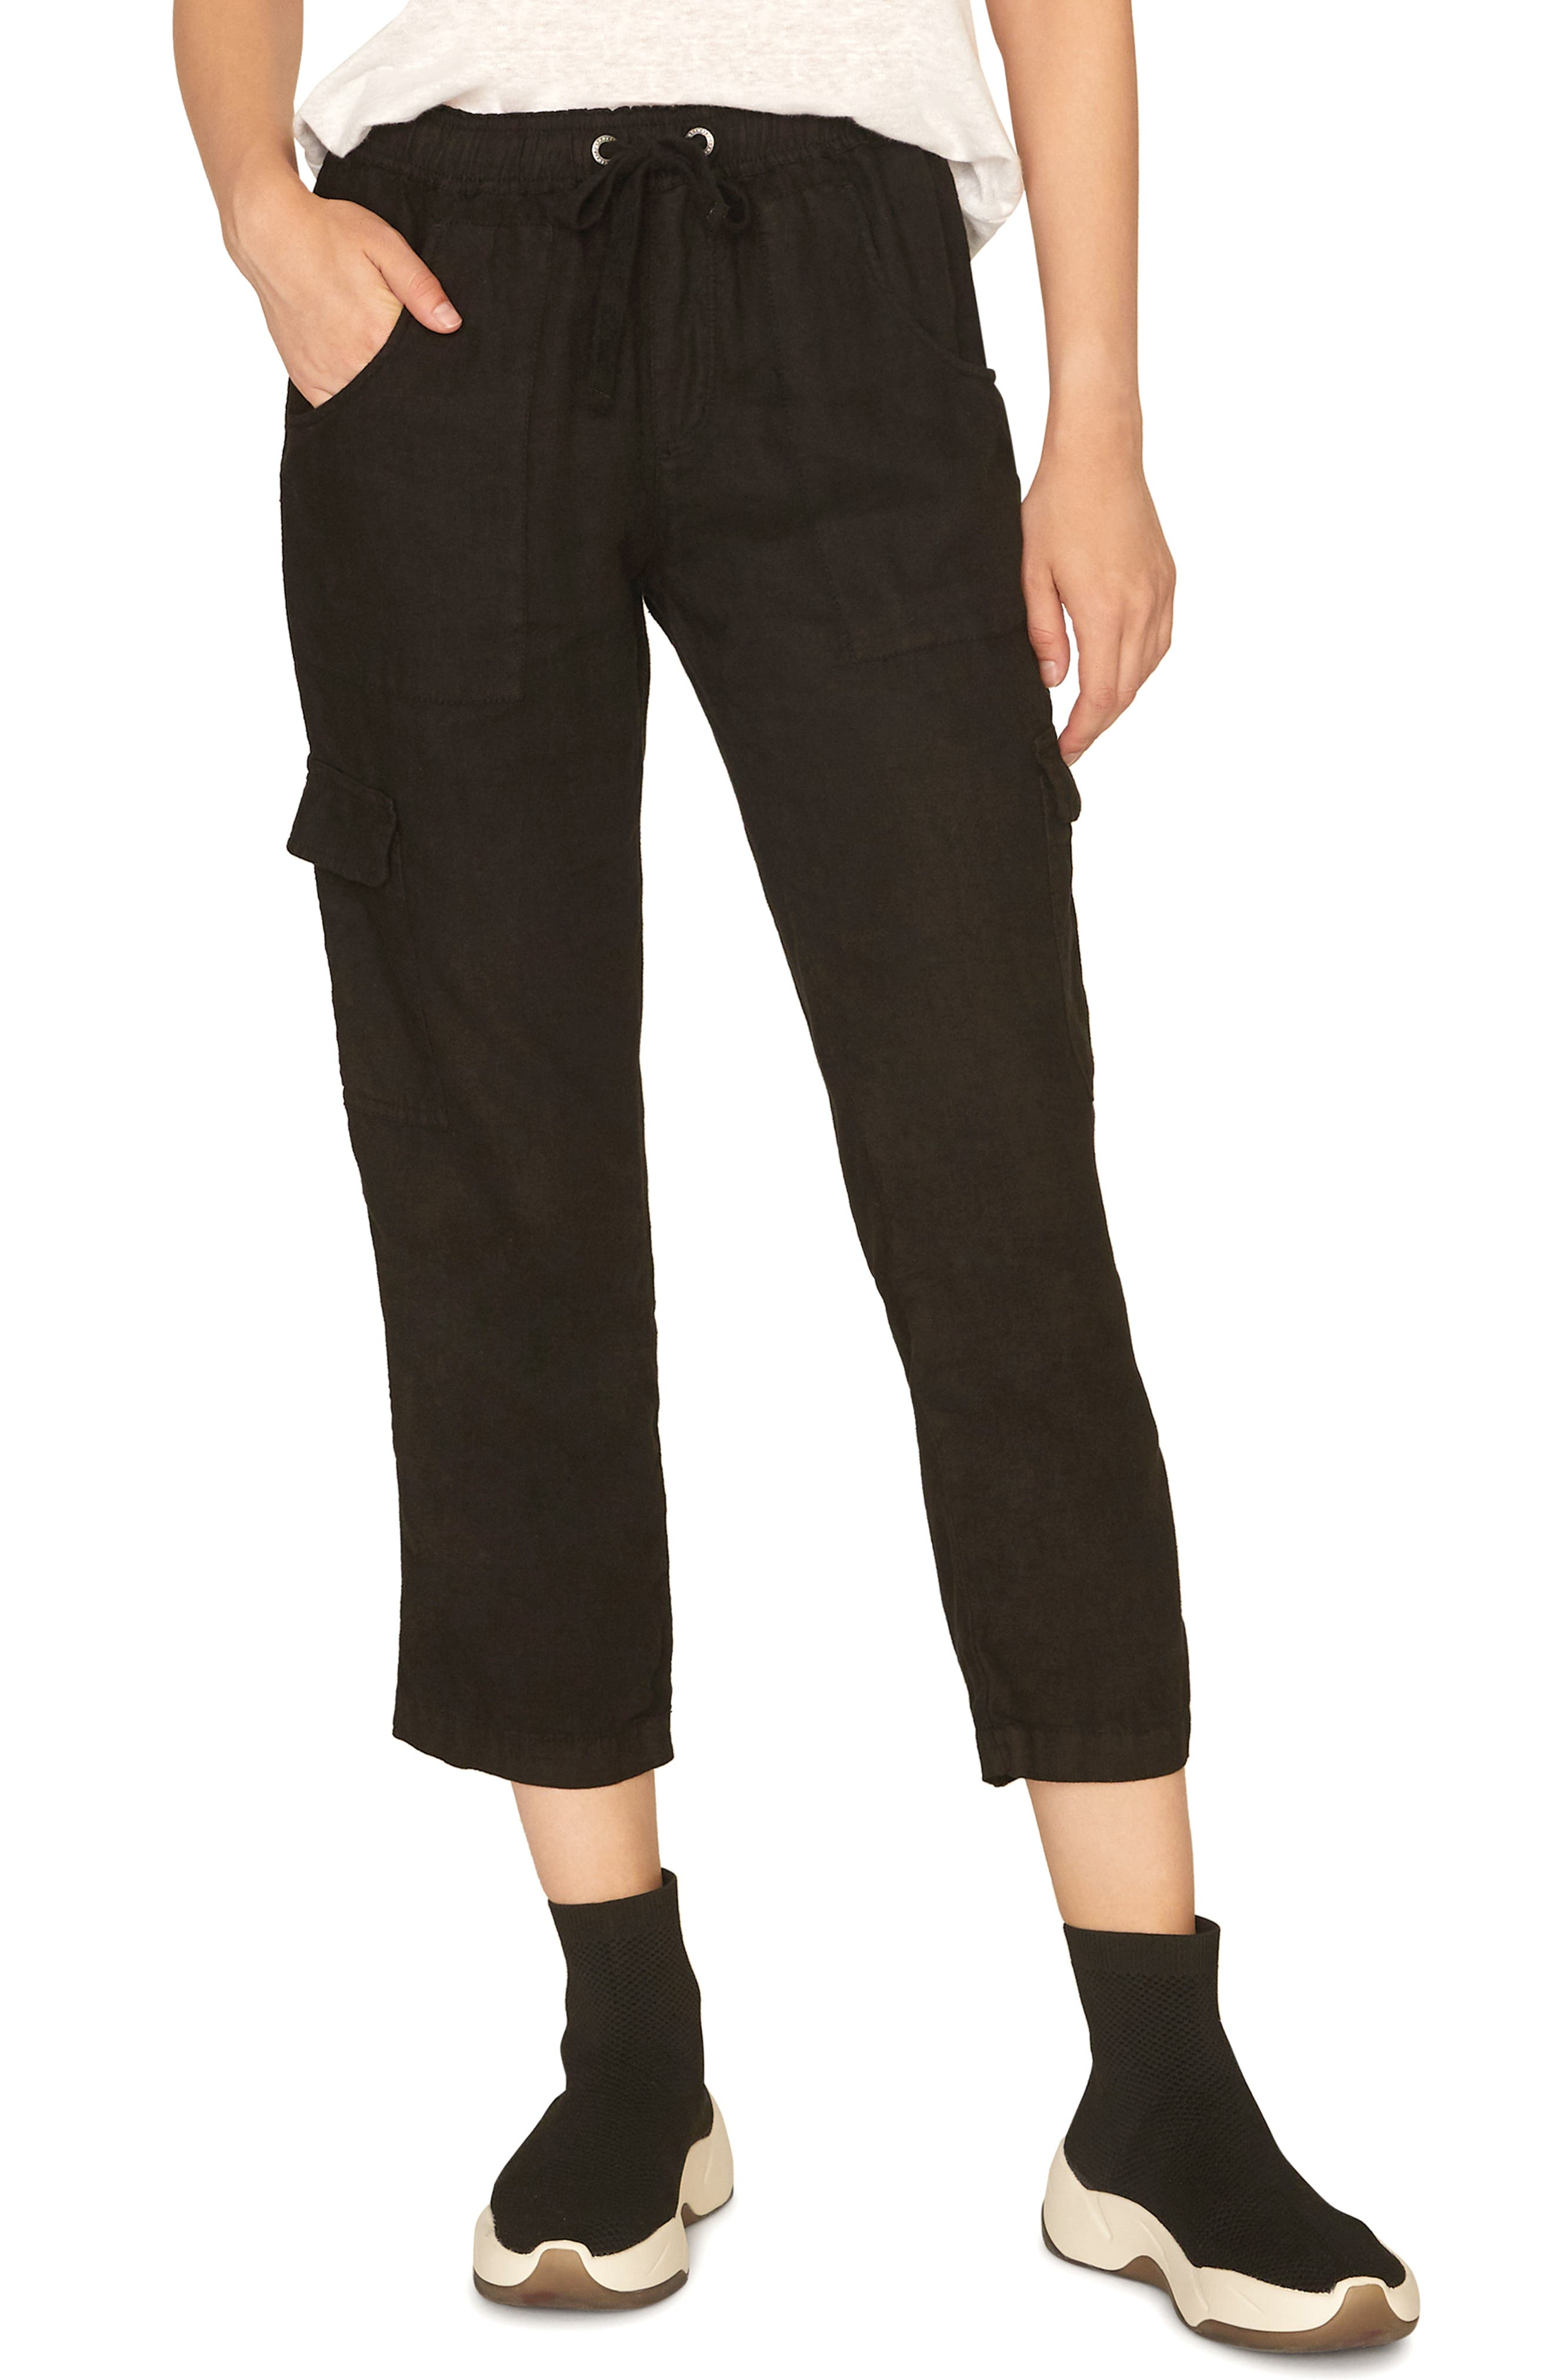 Sanctuary Discoverer Pull-On Cargo Pants, Black